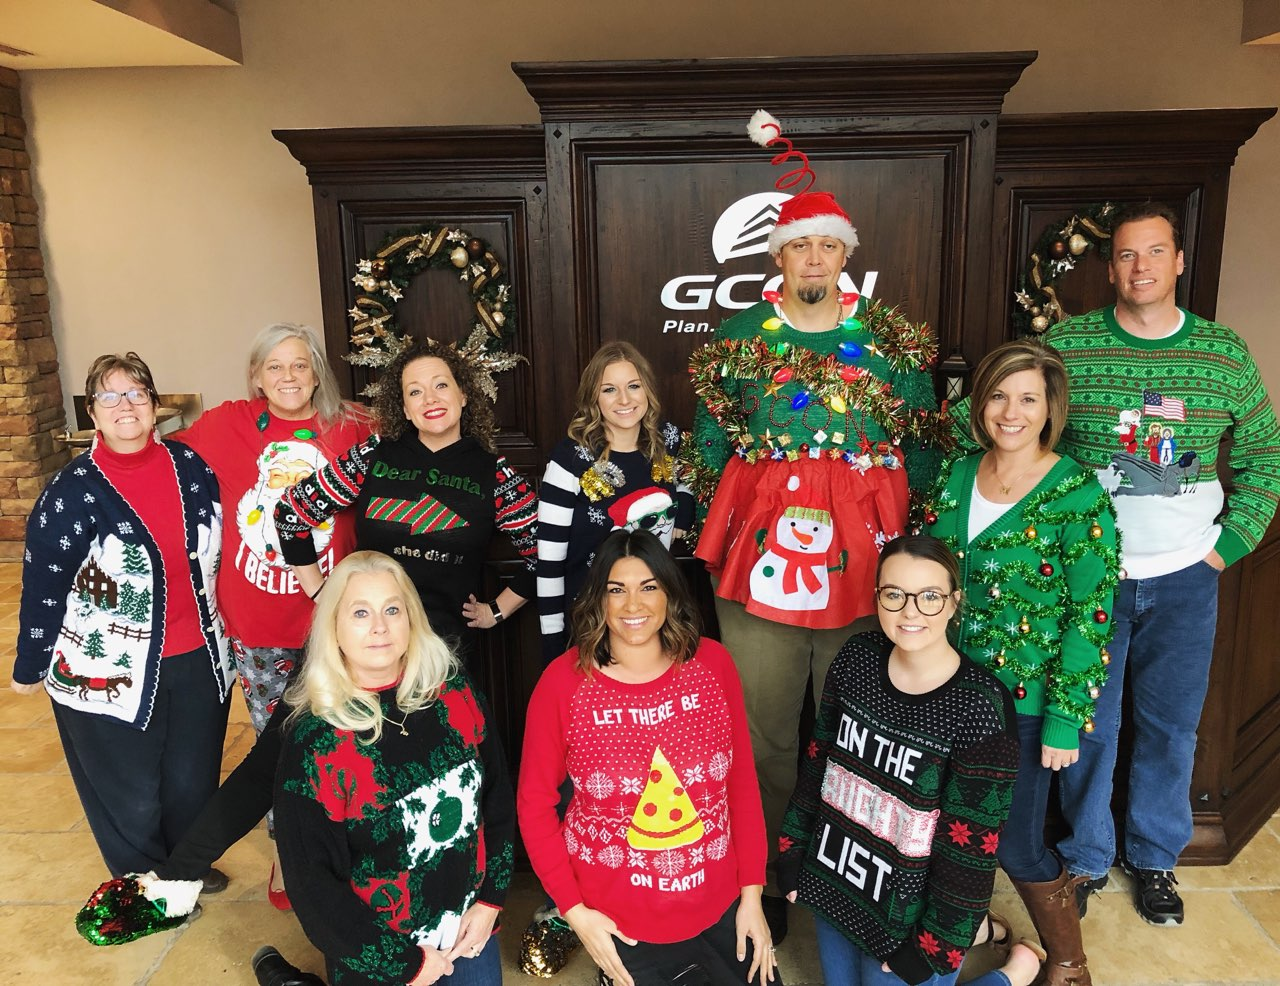 GCON Celebrates National Ugly Sweater Day With A Contest